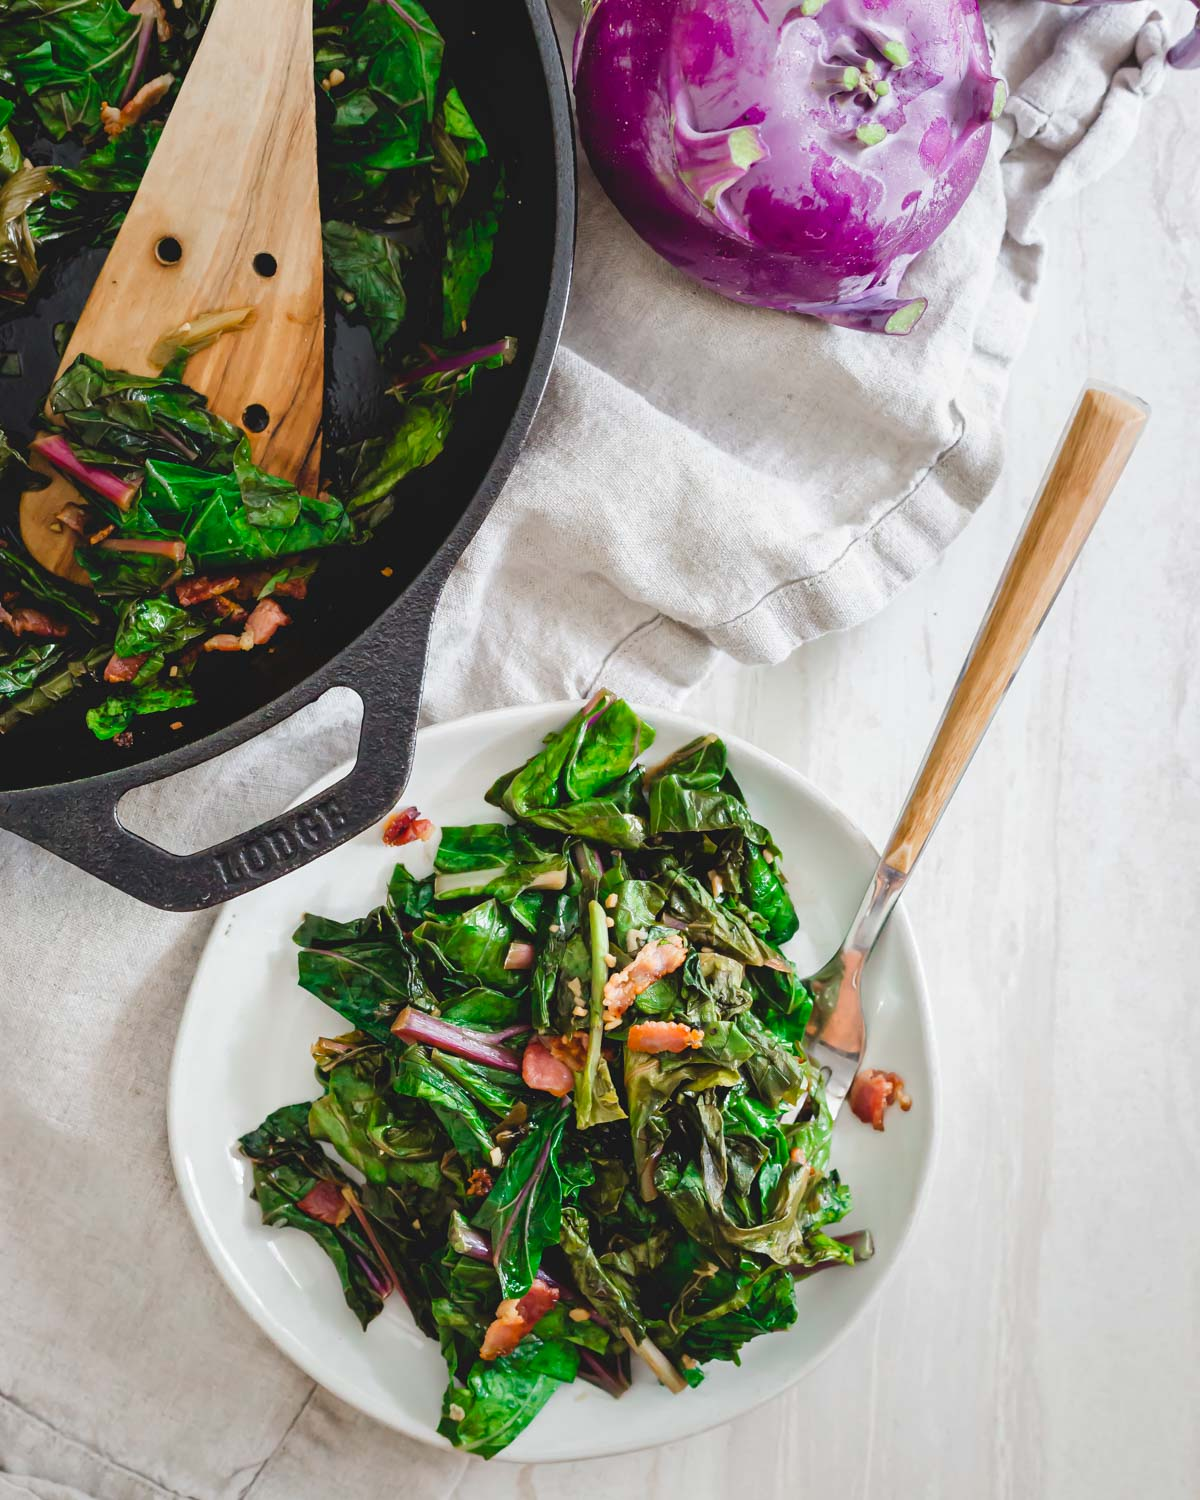 Leafy kohlrabi greens sautéed until tender with garlic, green onions and topped with crispy bacon.